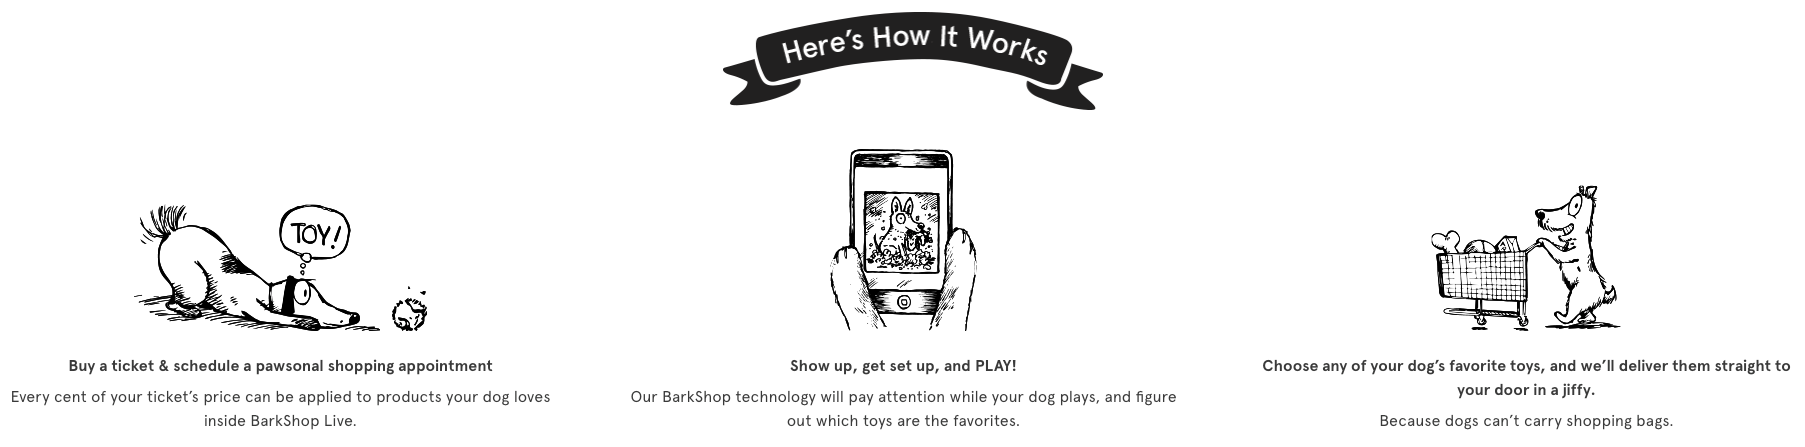 BarkShop Live How it Works